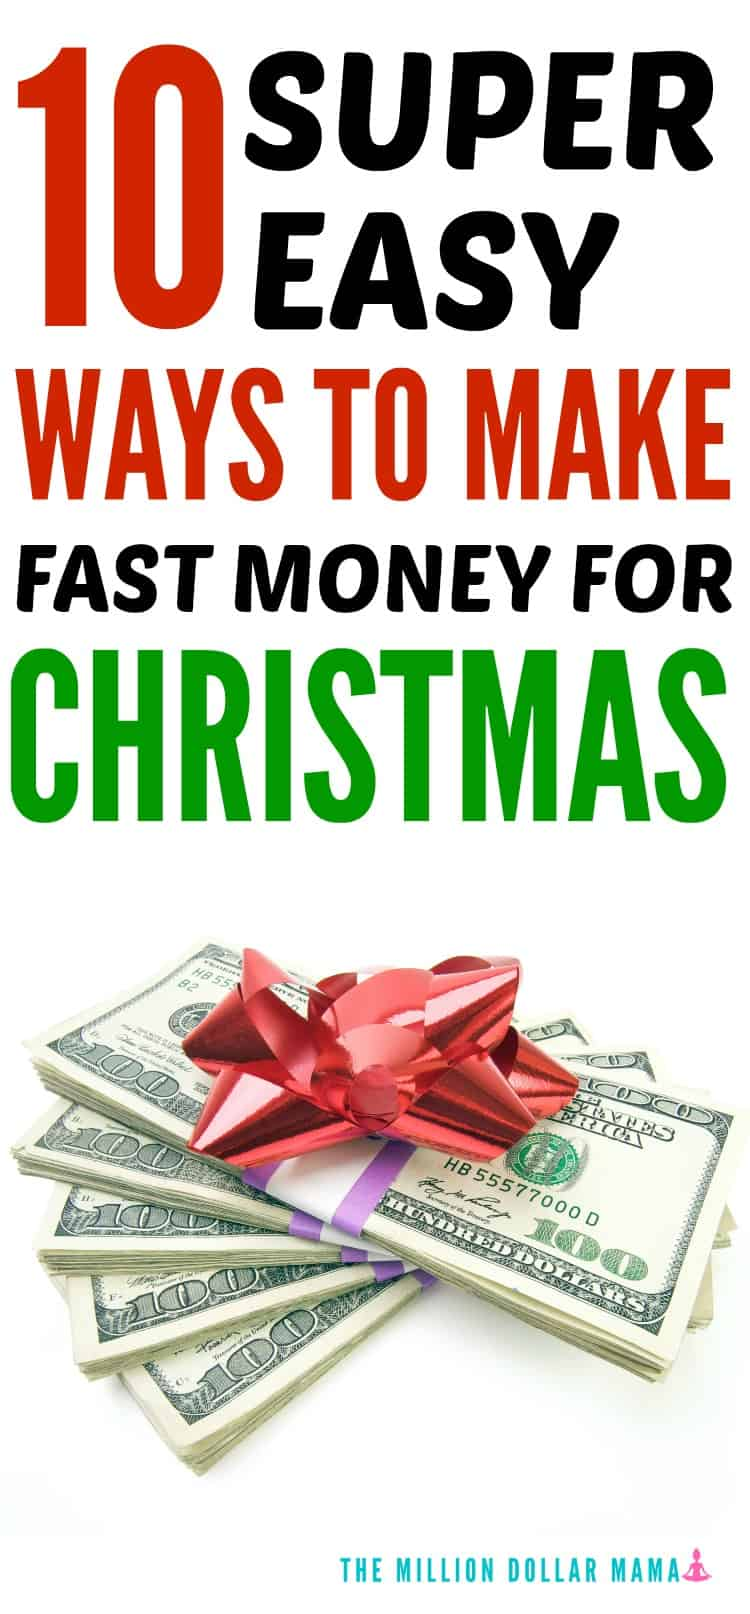 10 Easy Ways To Fix Your Door In Under An Hour: 10 Easy Ways To Make Extra Money For Christmas